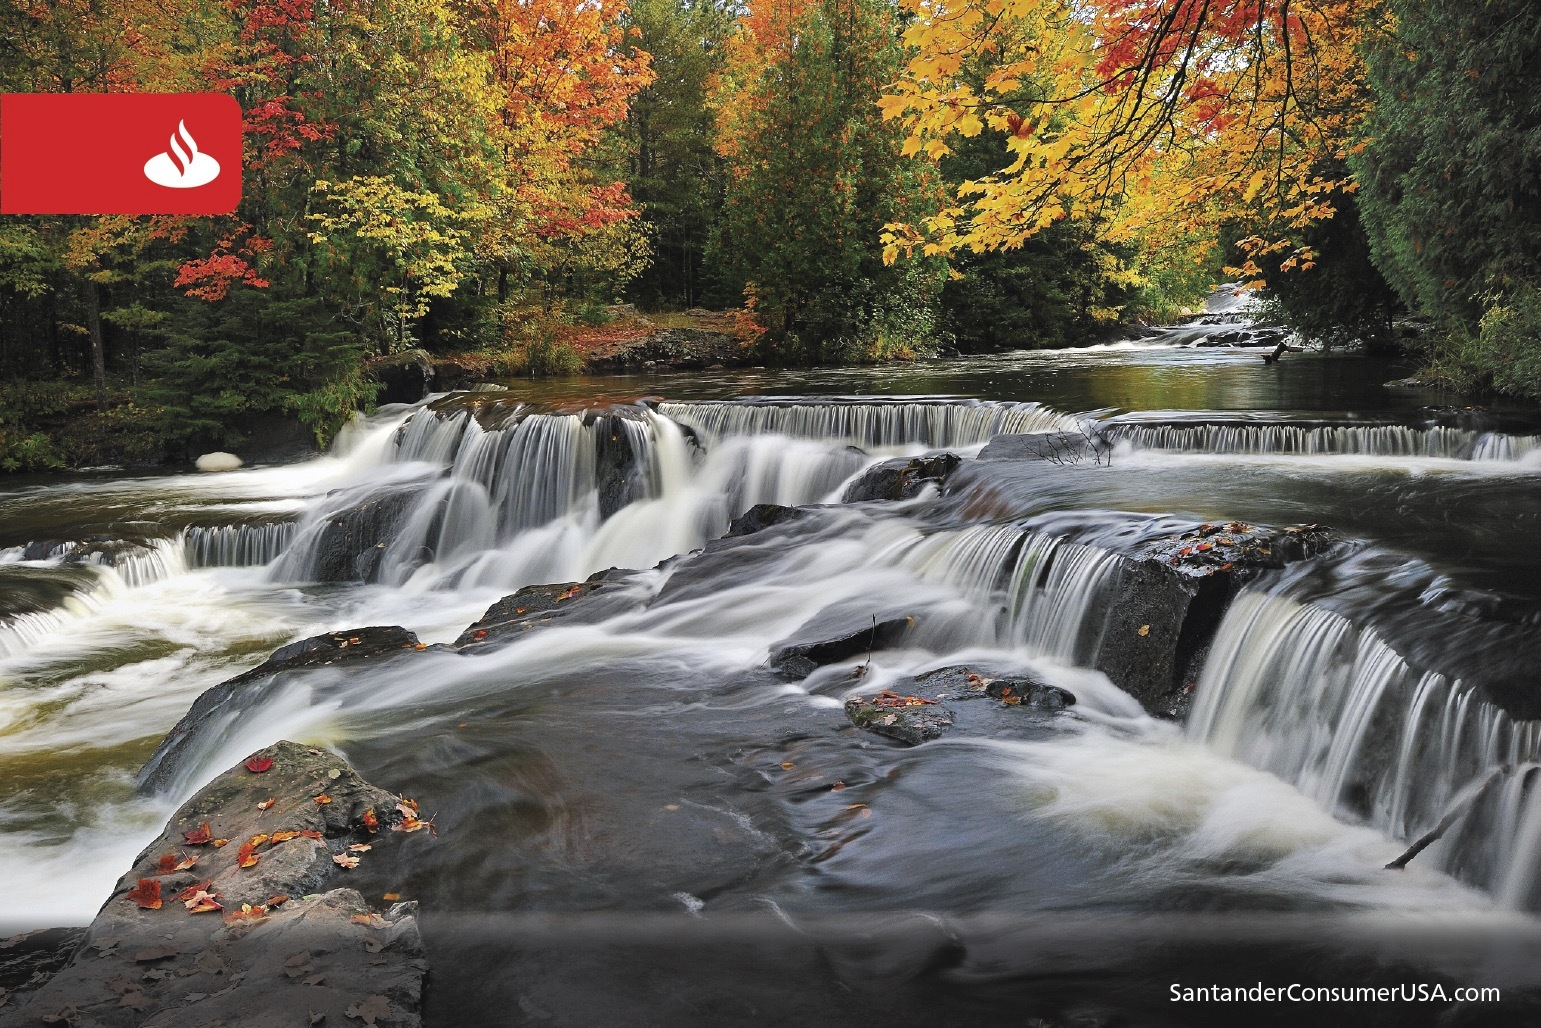 Bond Falls on the Ontonagon River on Michigan's Upper Peninsula.